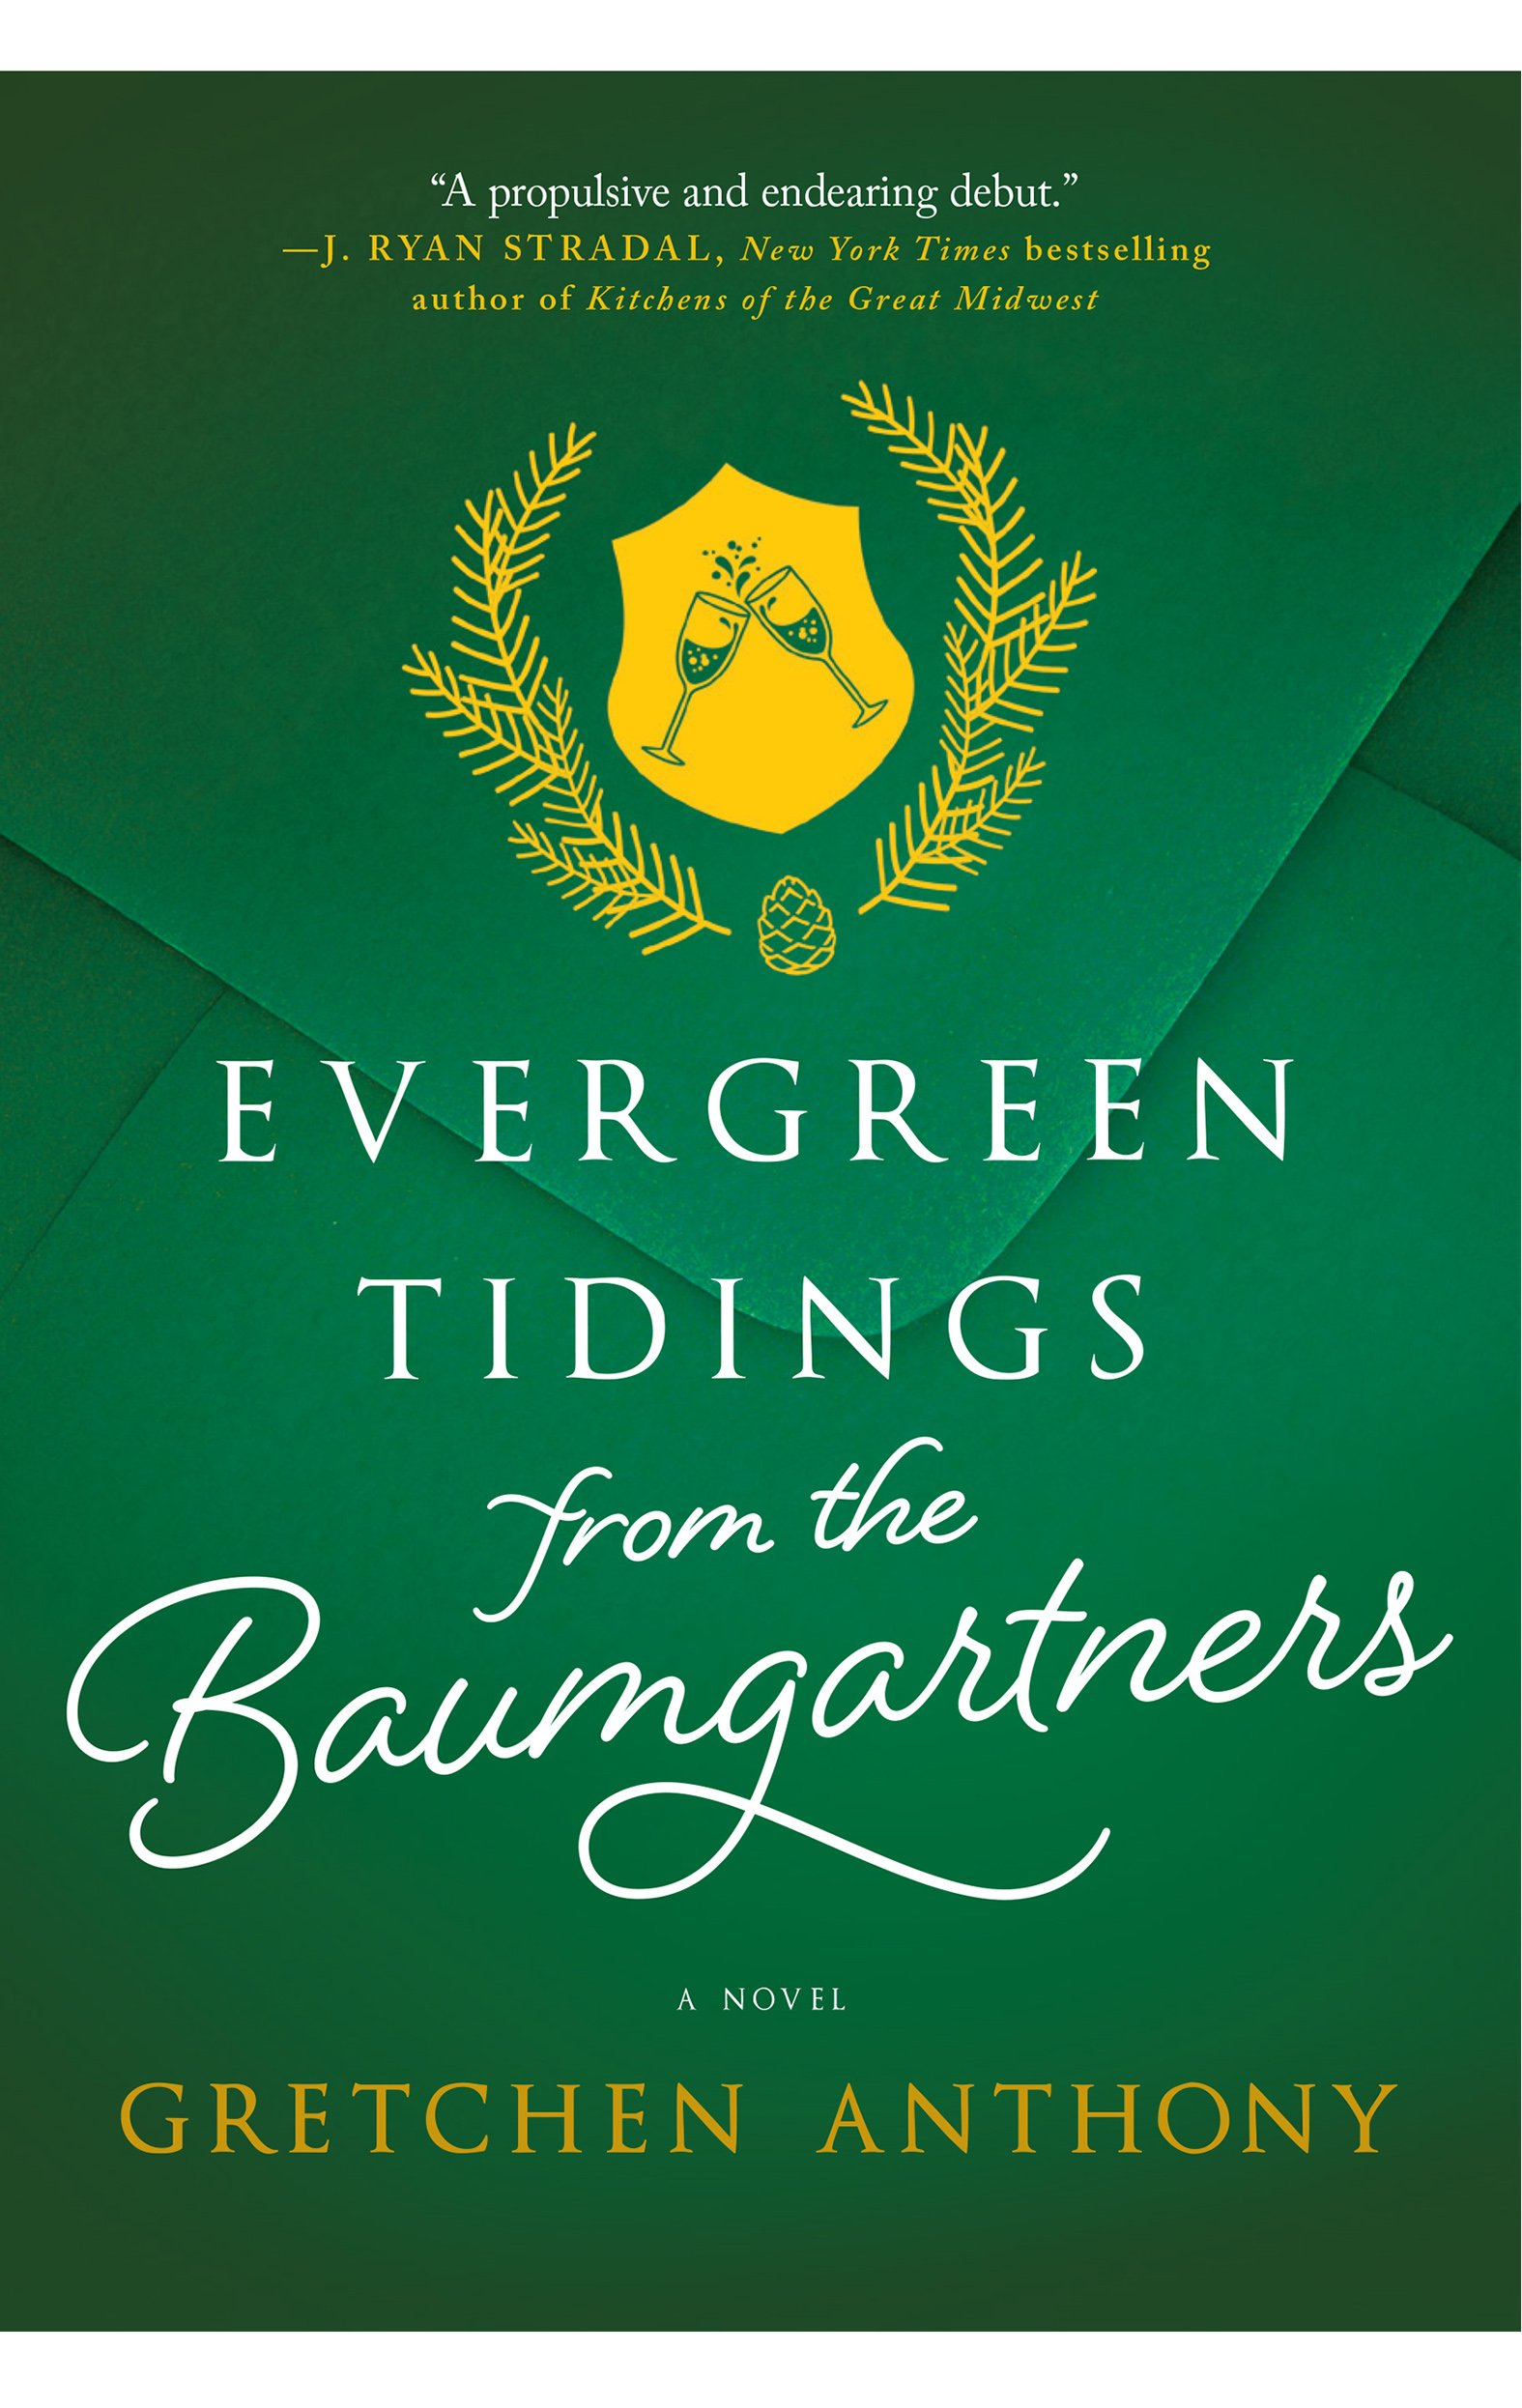 evergreen tidings final cover.jpg